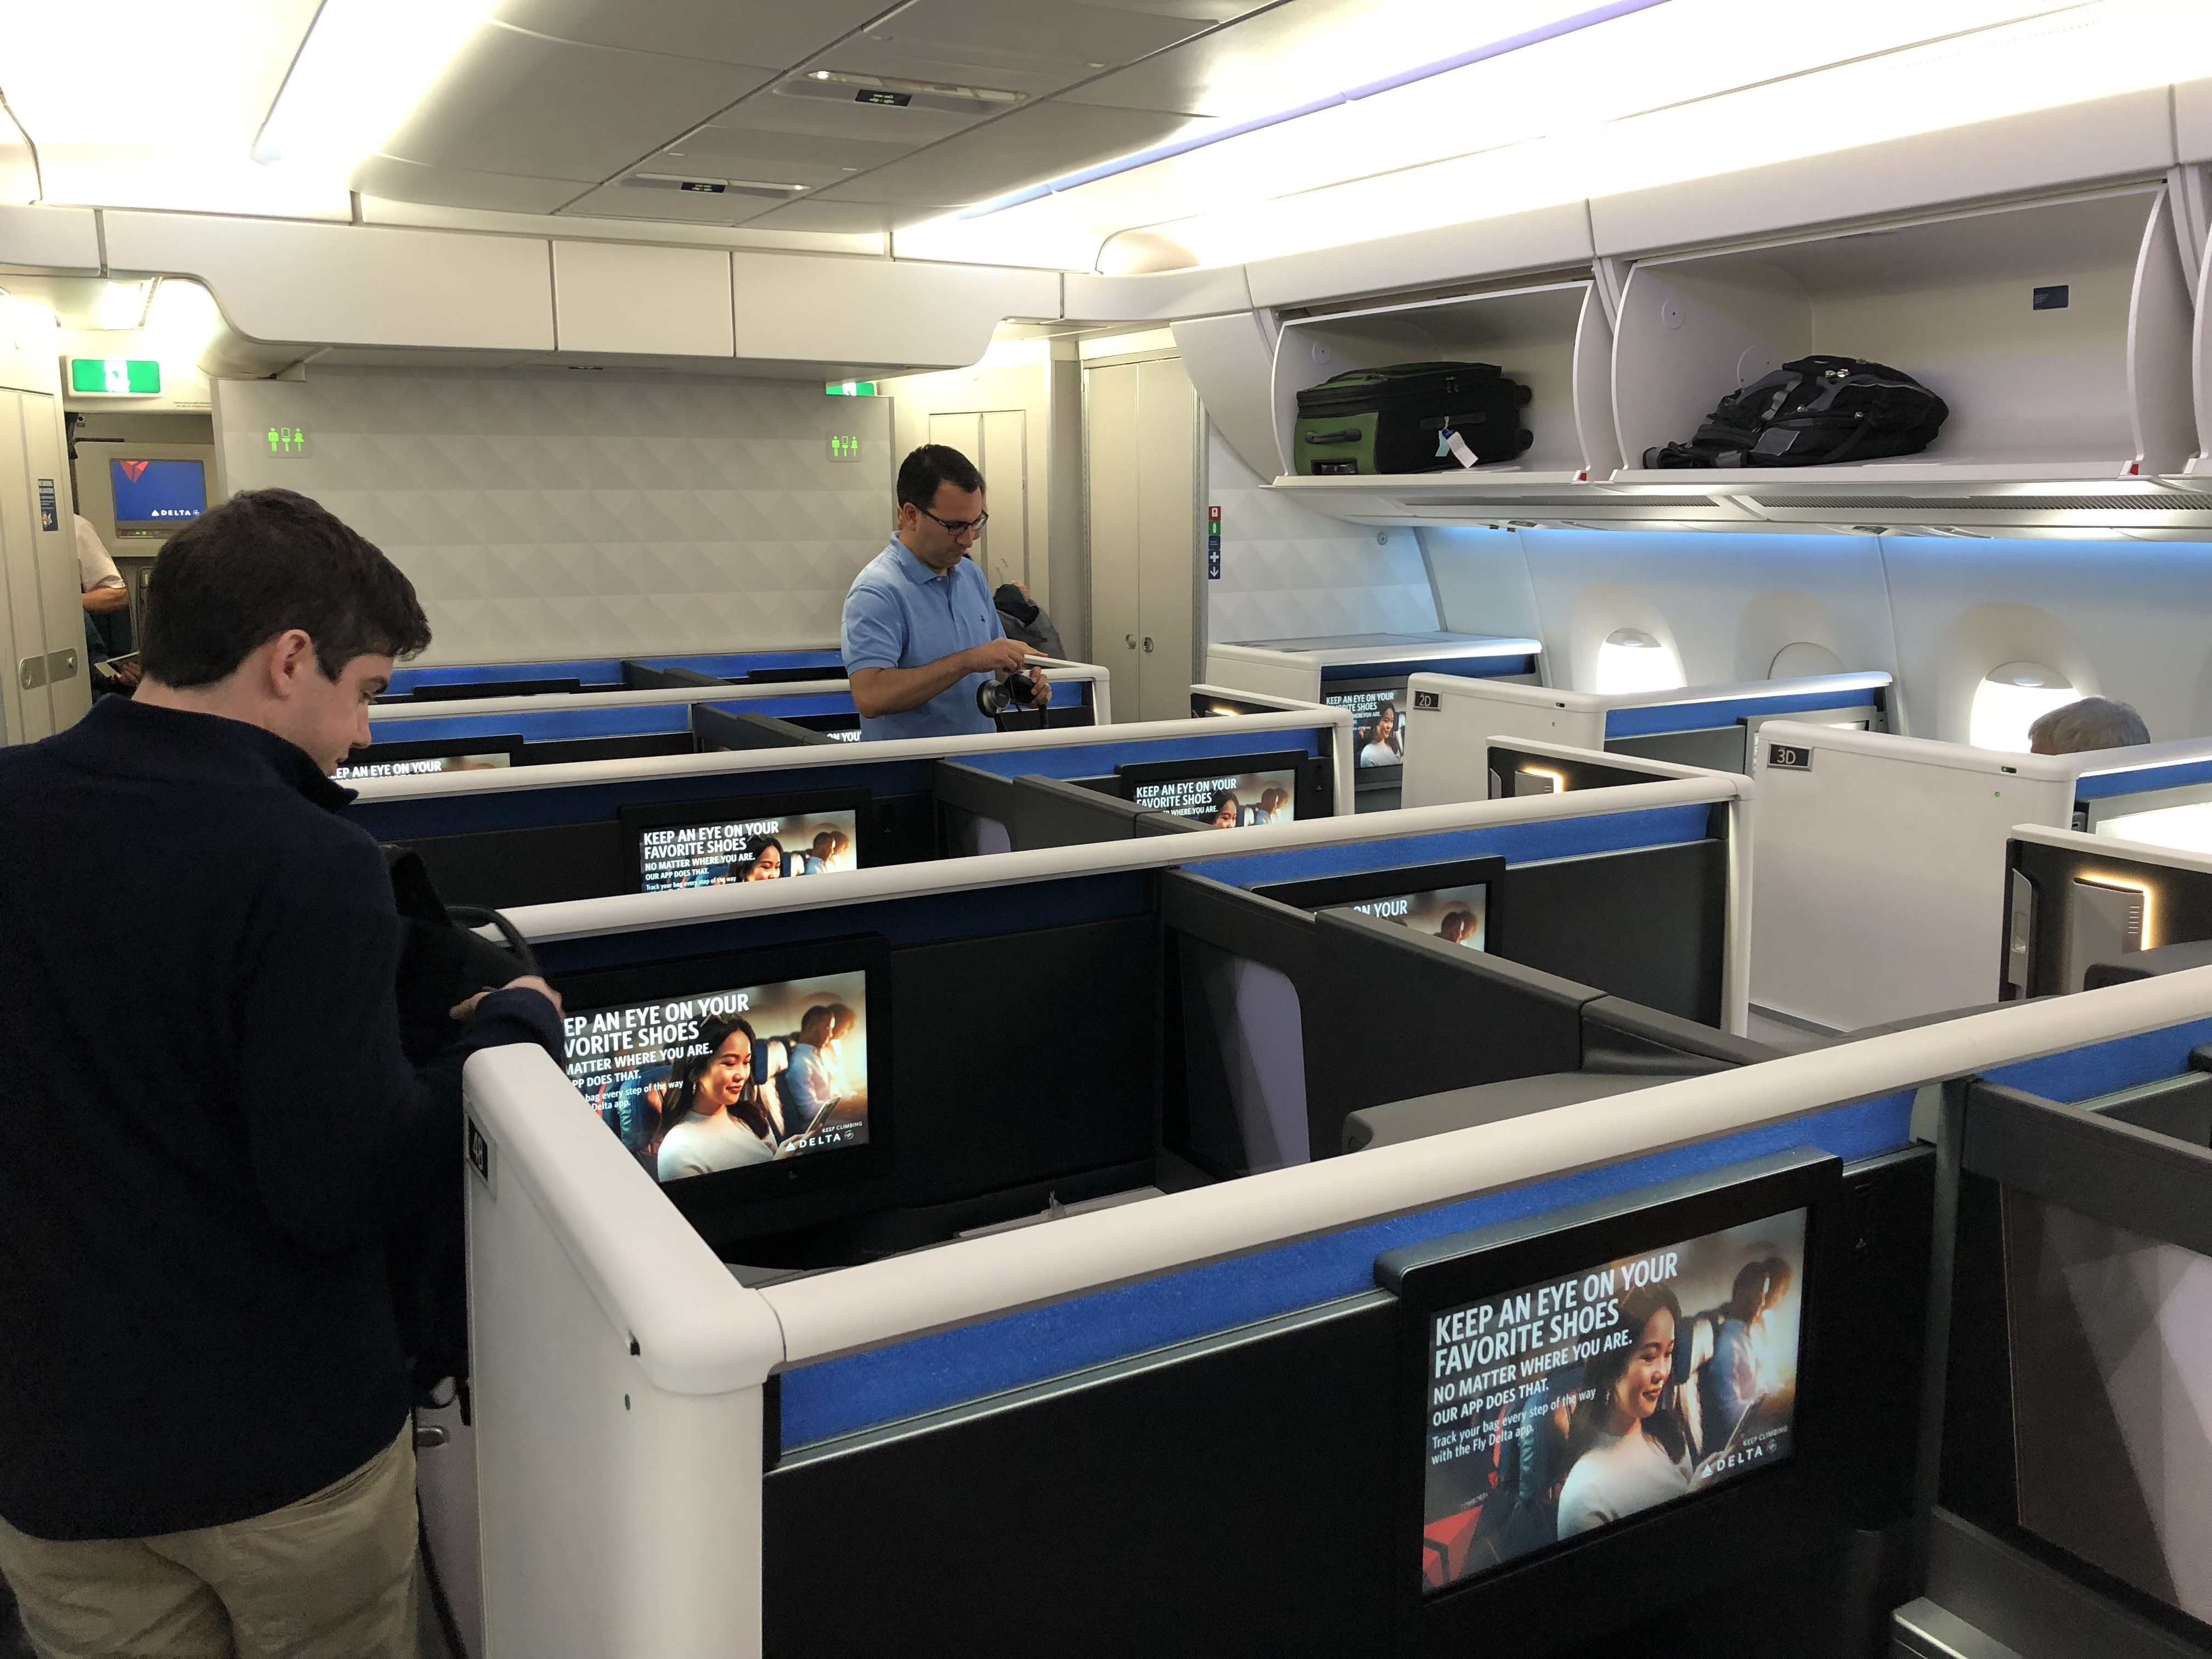 Review: Delta One Suites From Detroit to Seoul - Air Travel